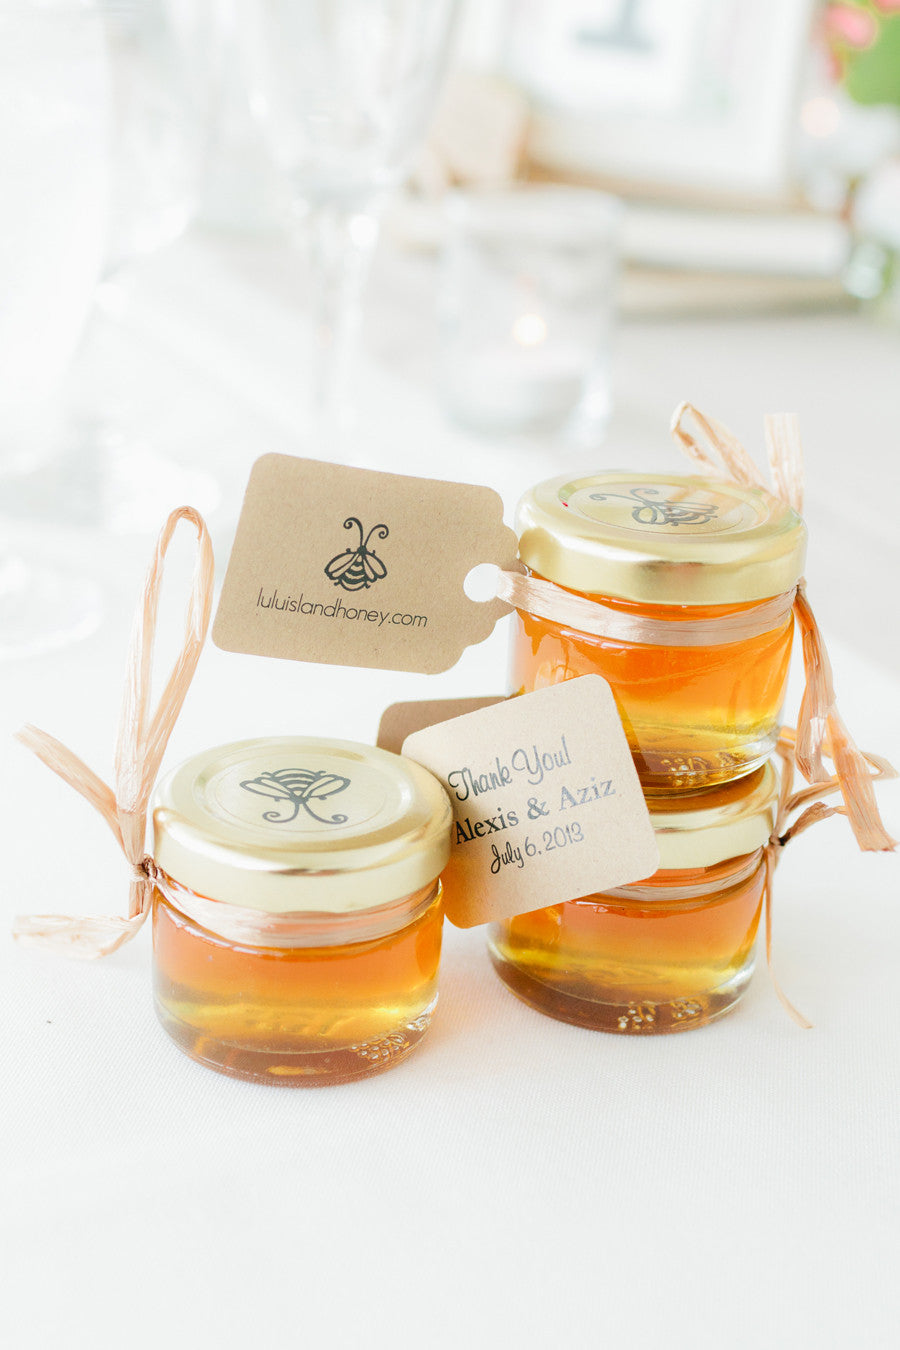 Honey Favours (30g - 1oz) CHARMERS – Lulu Island Favours - Canada